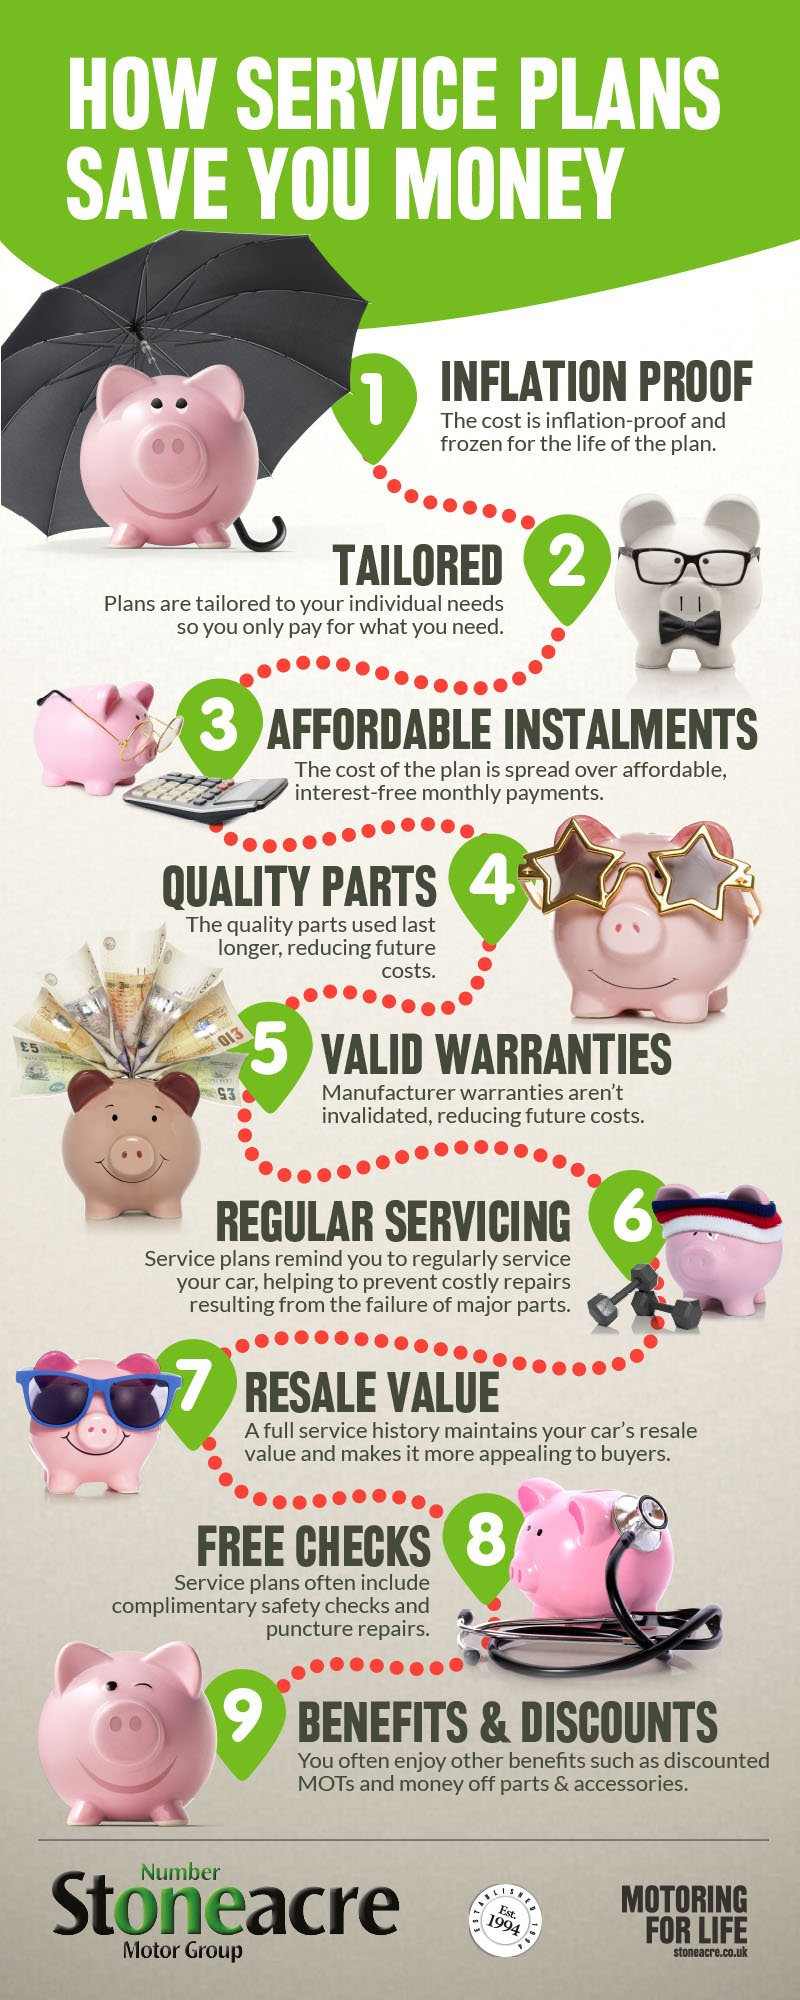 how service plans save you money infographic